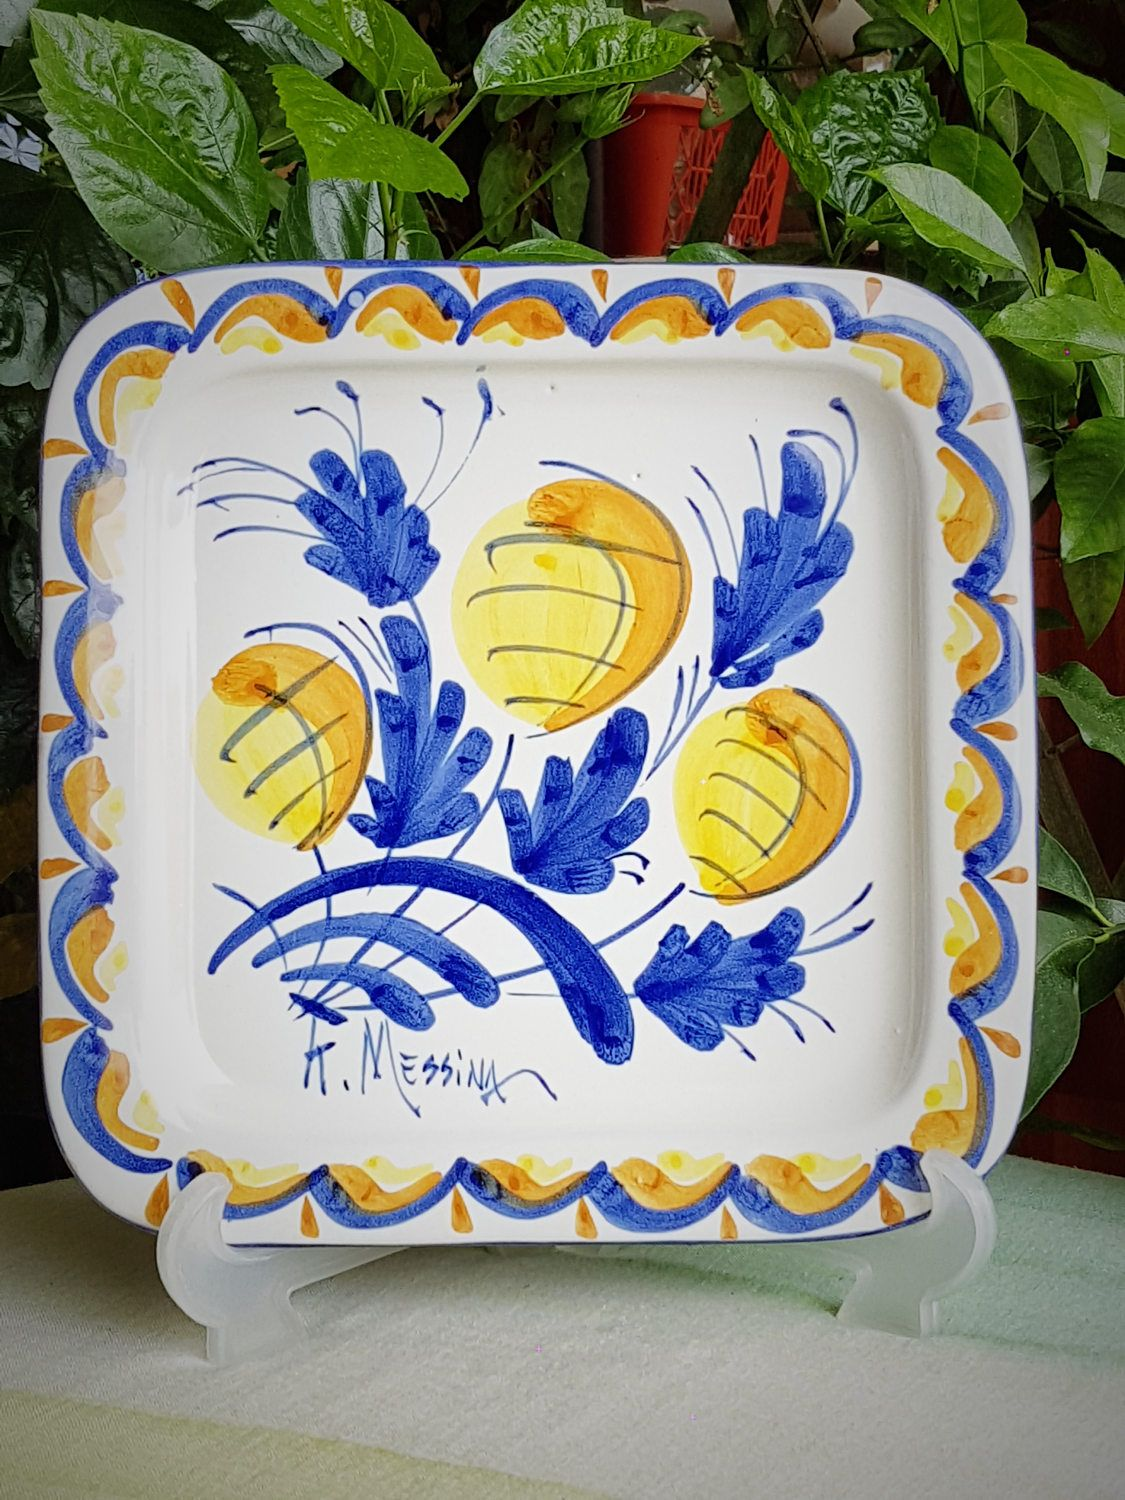 Come Appendere Piatti In Ceramica ceramic decorative plate. square plate. ketty messina